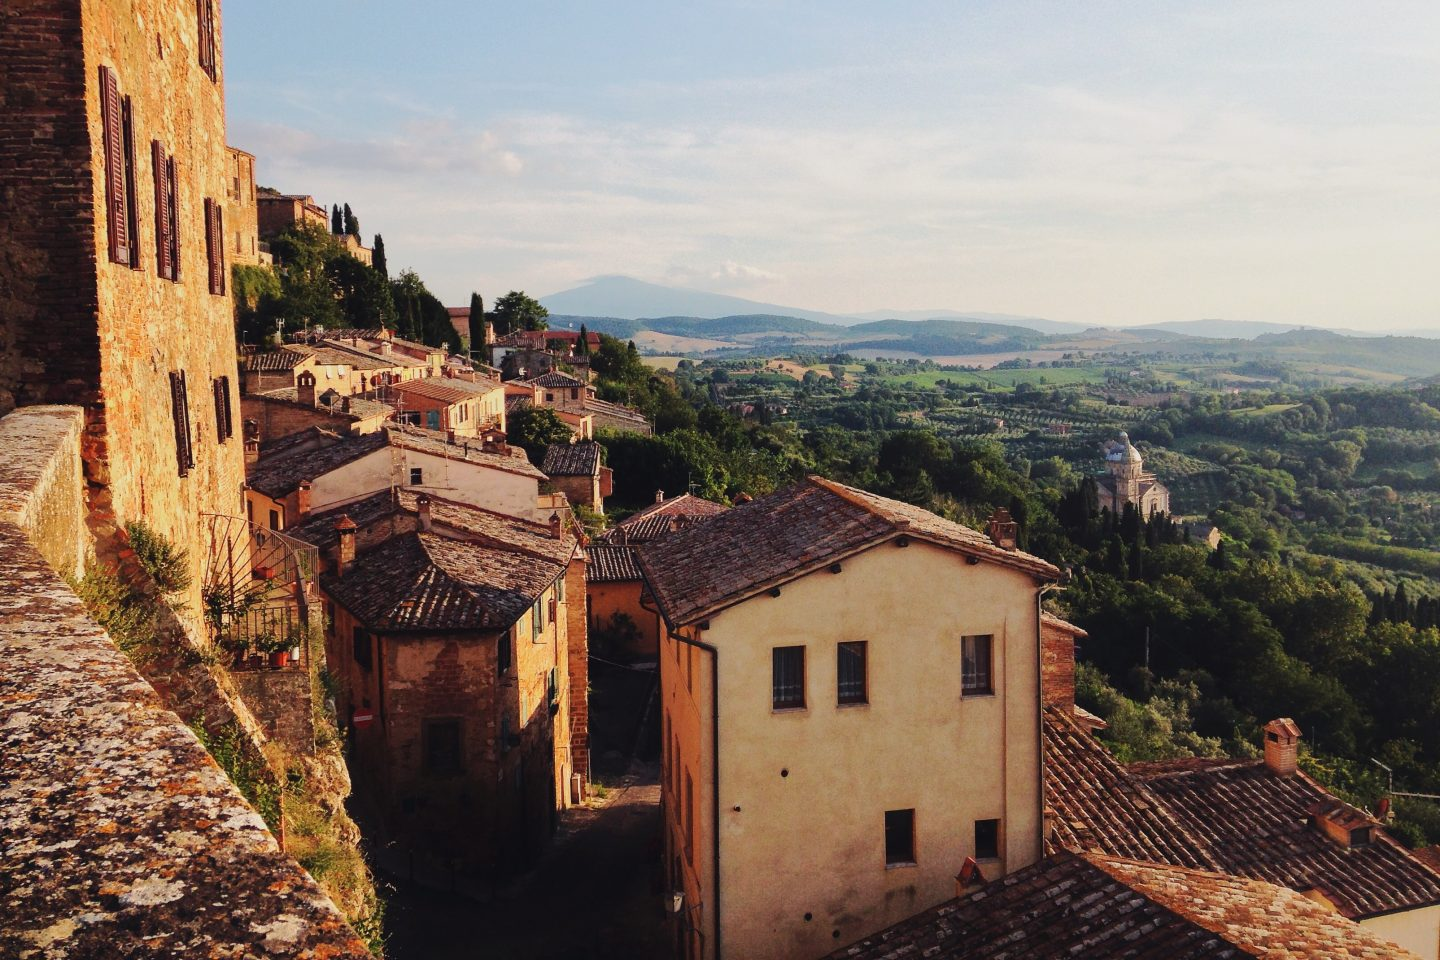 view over the mountains in italy, tuscany region, old village